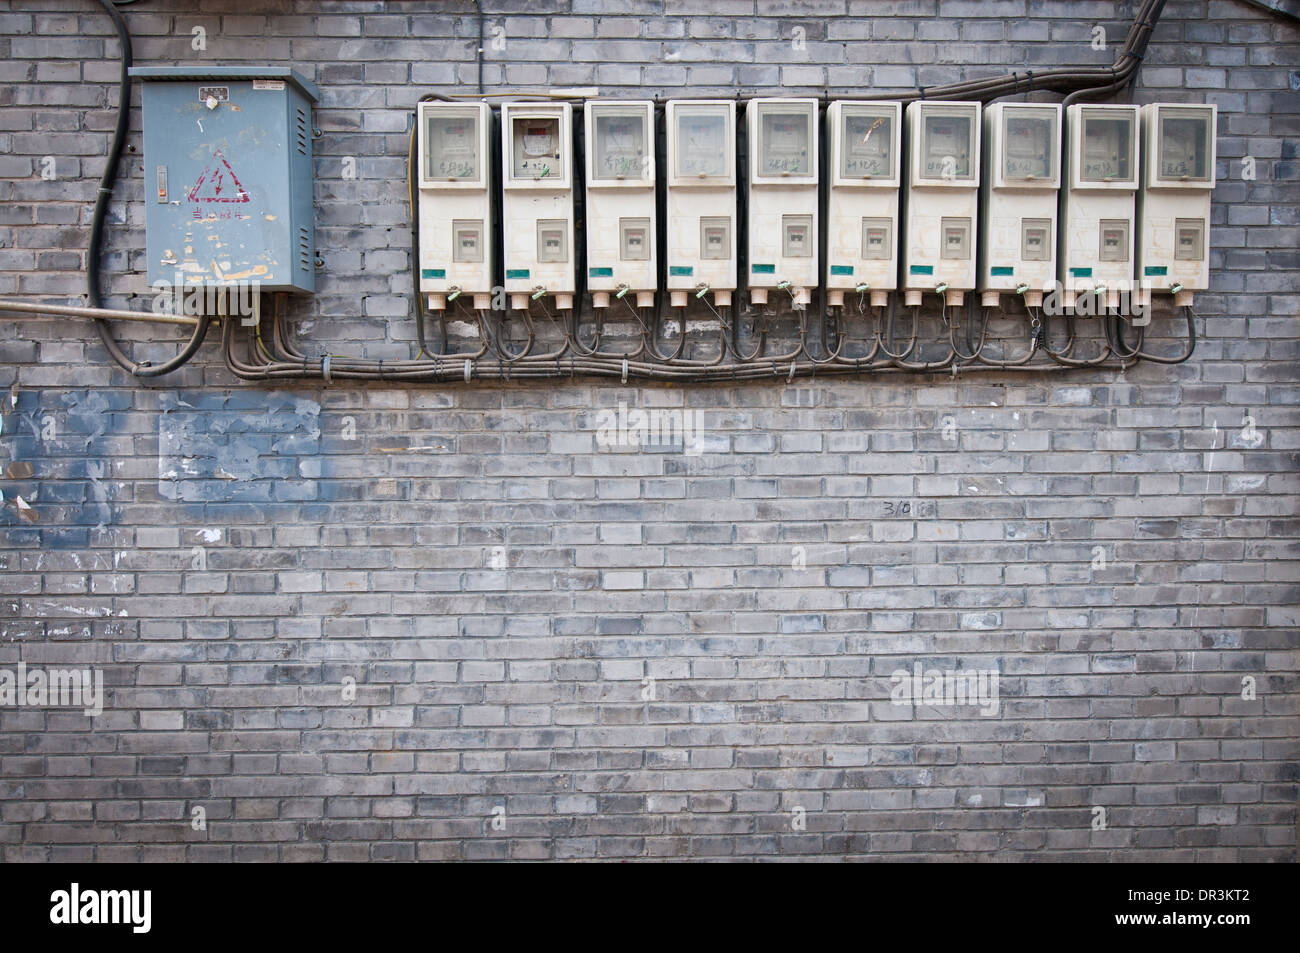 electricity meters and fuse boxes in hutong area, beijing, china - stock  image